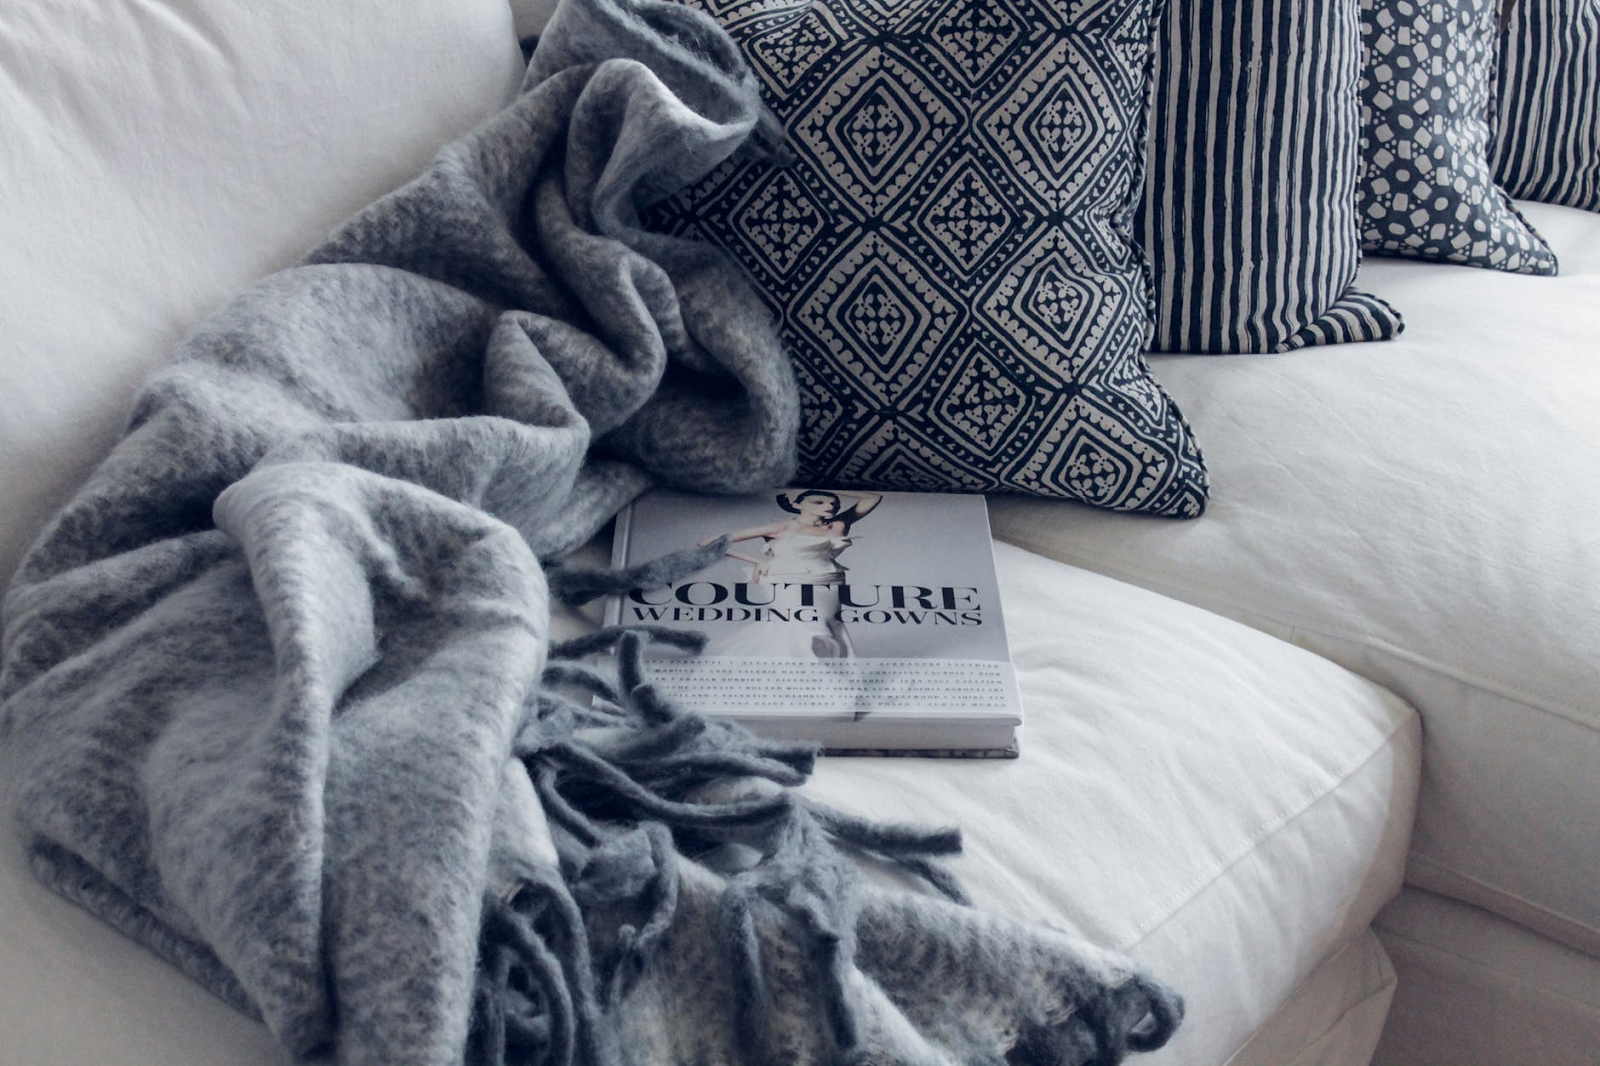 A throw blanket and a book resting on a sofa